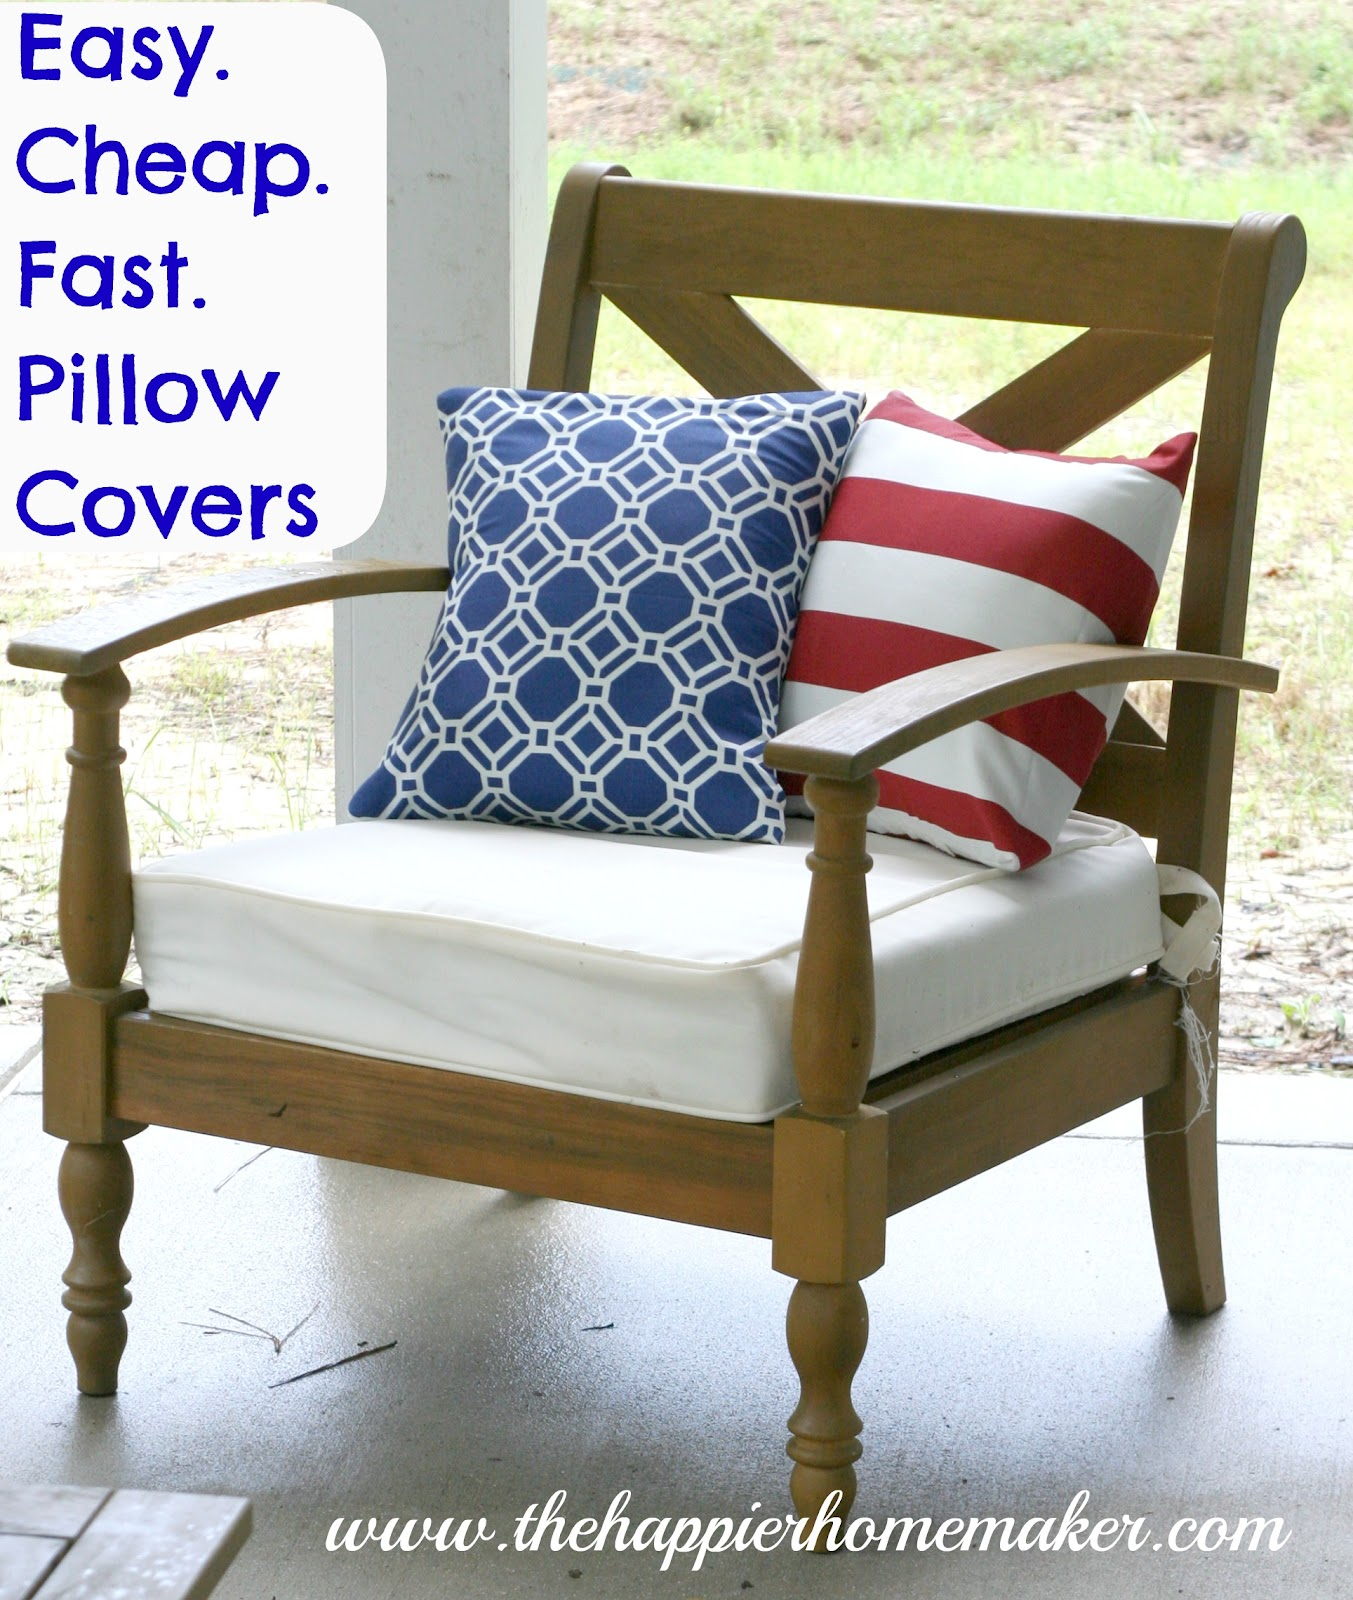 Luxury Patio Furniture Cushion Covers